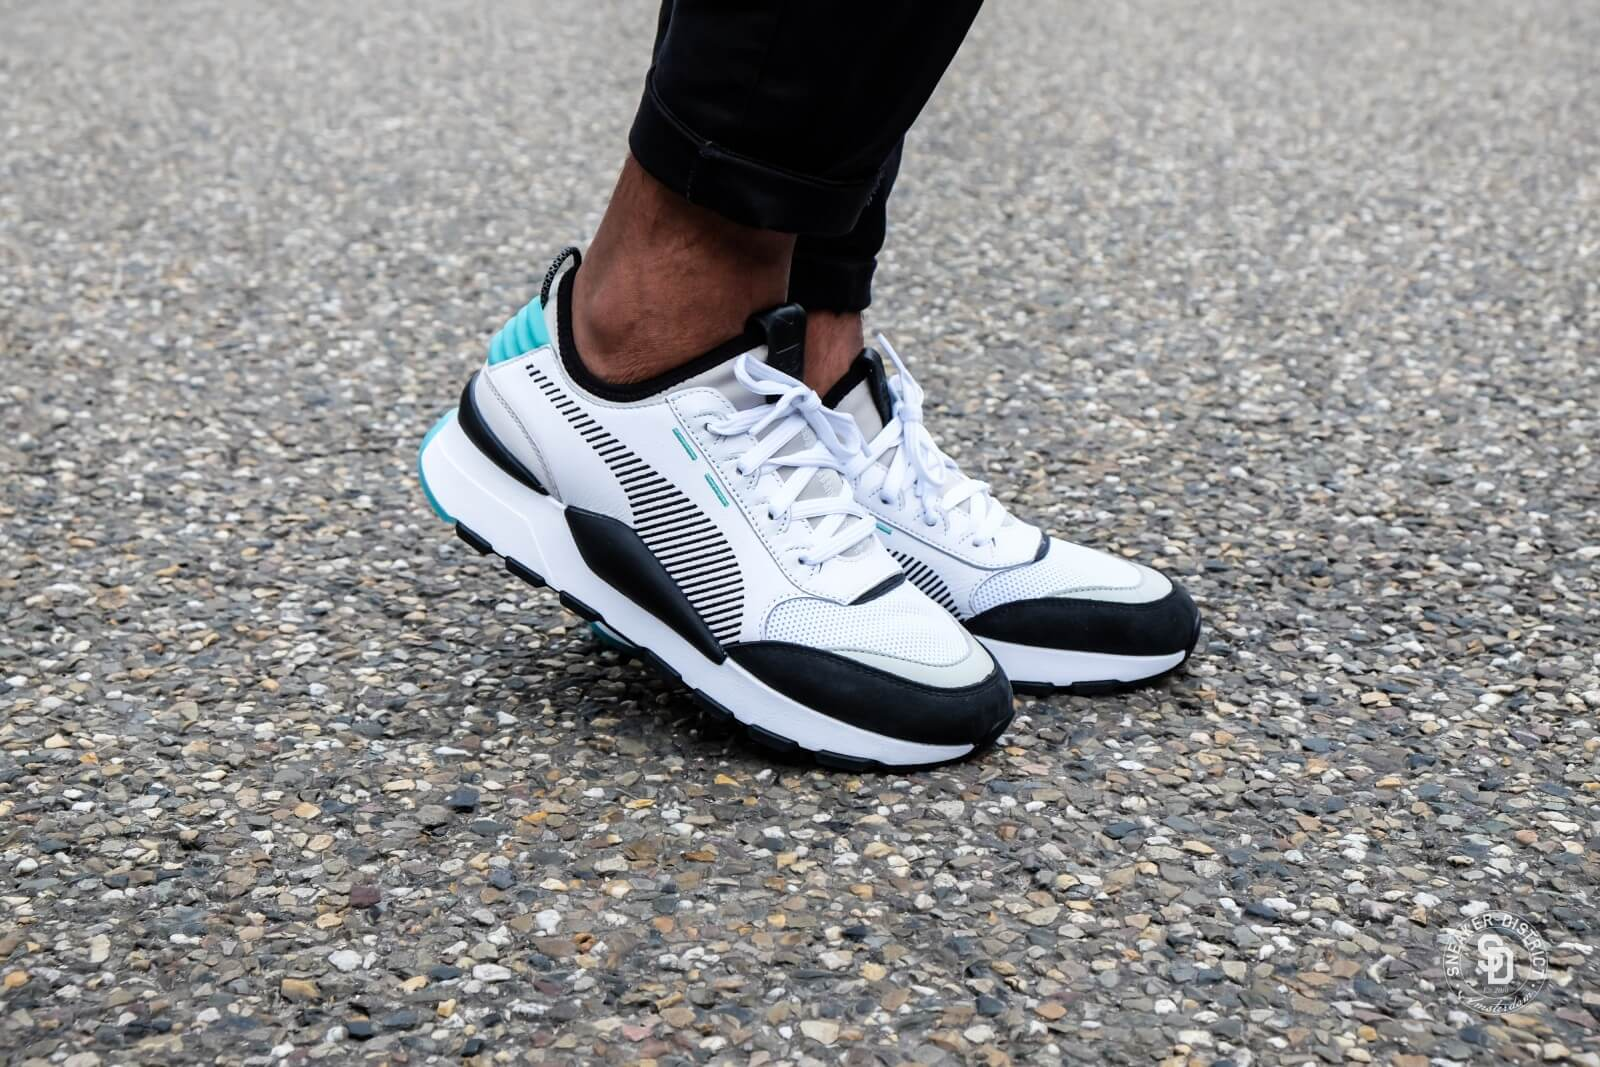 Puma RS-0 Re-Invention White/Gray-Violet Biscay Green - 366887-01